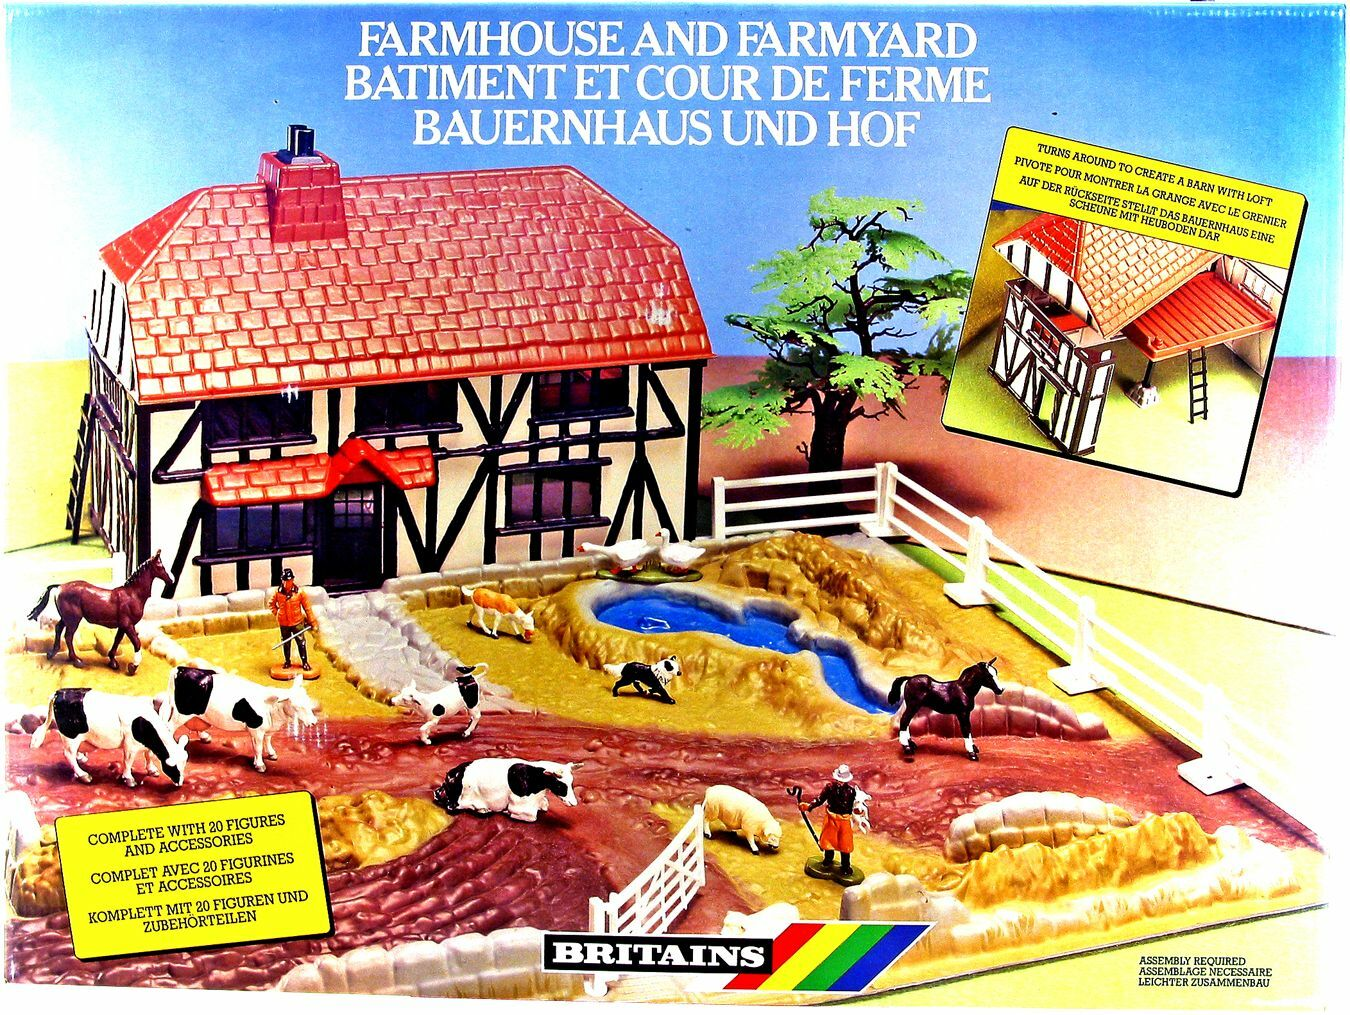 Britains () Farmhouse and Farmyard - mint in låda - made in England 1988